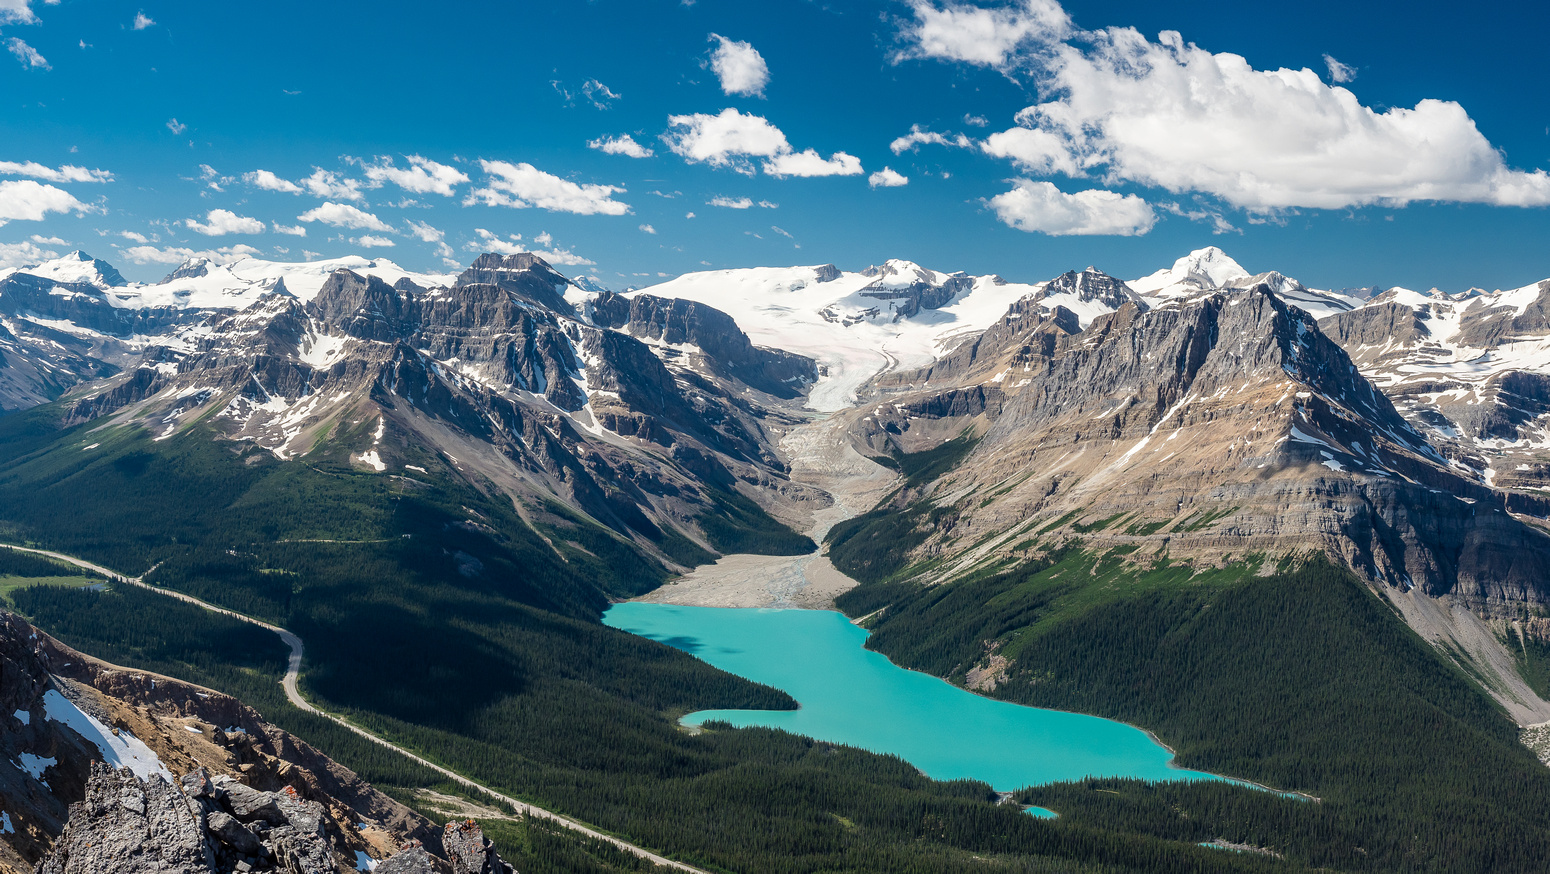 An unusual view of Peyto Lake with the Peyto Glacier draining into it.